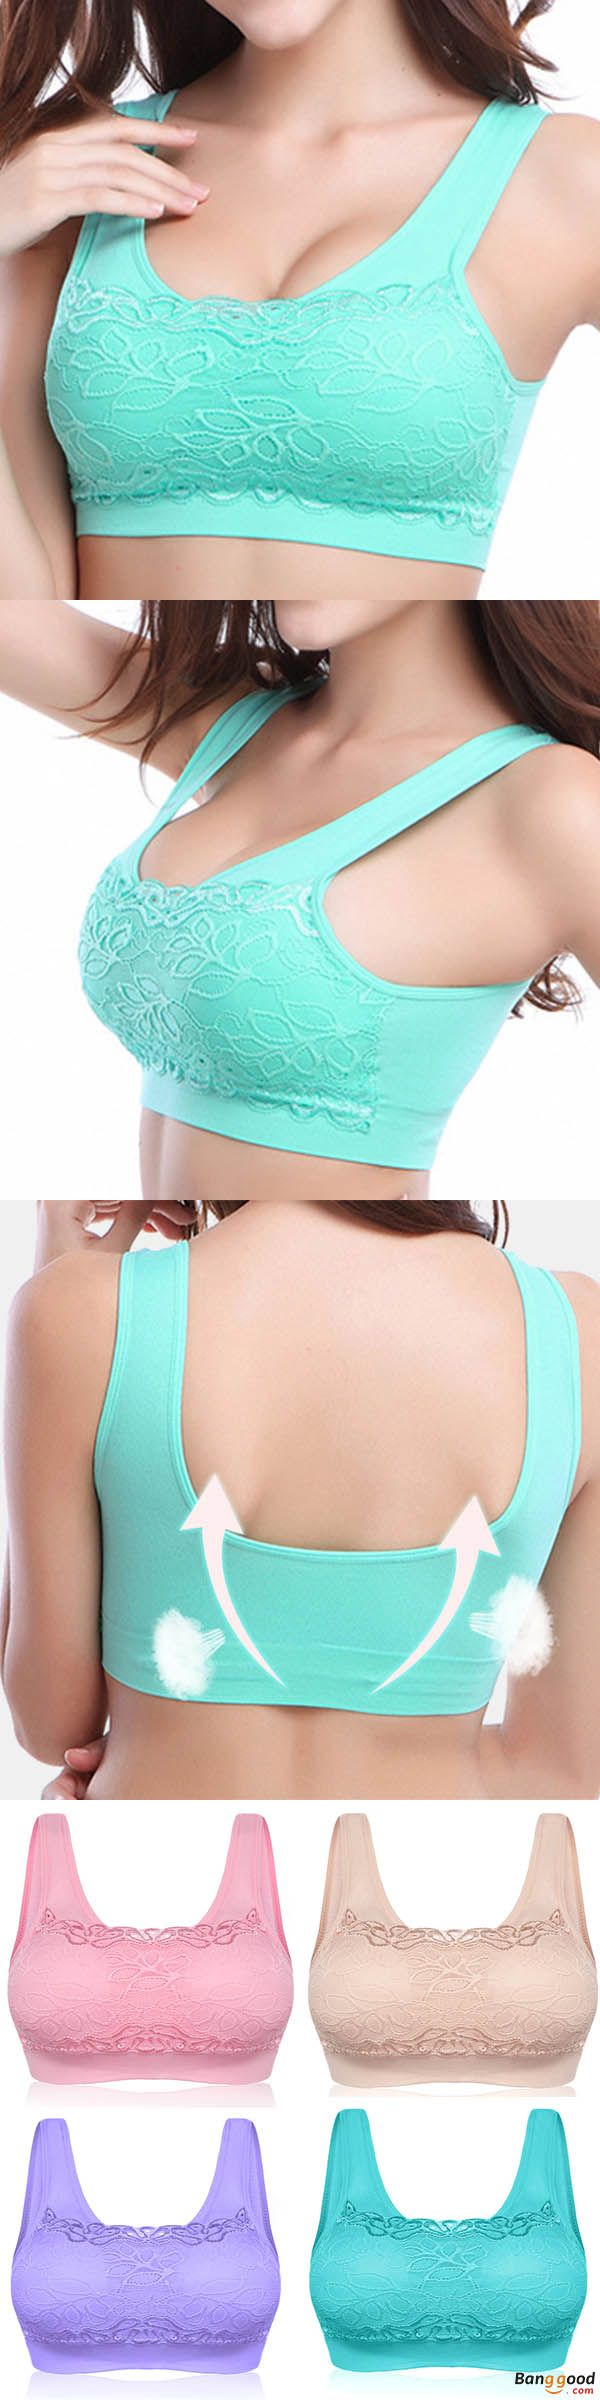 US$8.66 + Free shipping. Women Seamless Wireless Gather Soft Lace Jacquard Yoga Sleeping Vest Tops Bra. Colors: Black, Pink, Nude, Purple, Green, White. Size: M,L,XL,2XL. Color your summer, shop now!